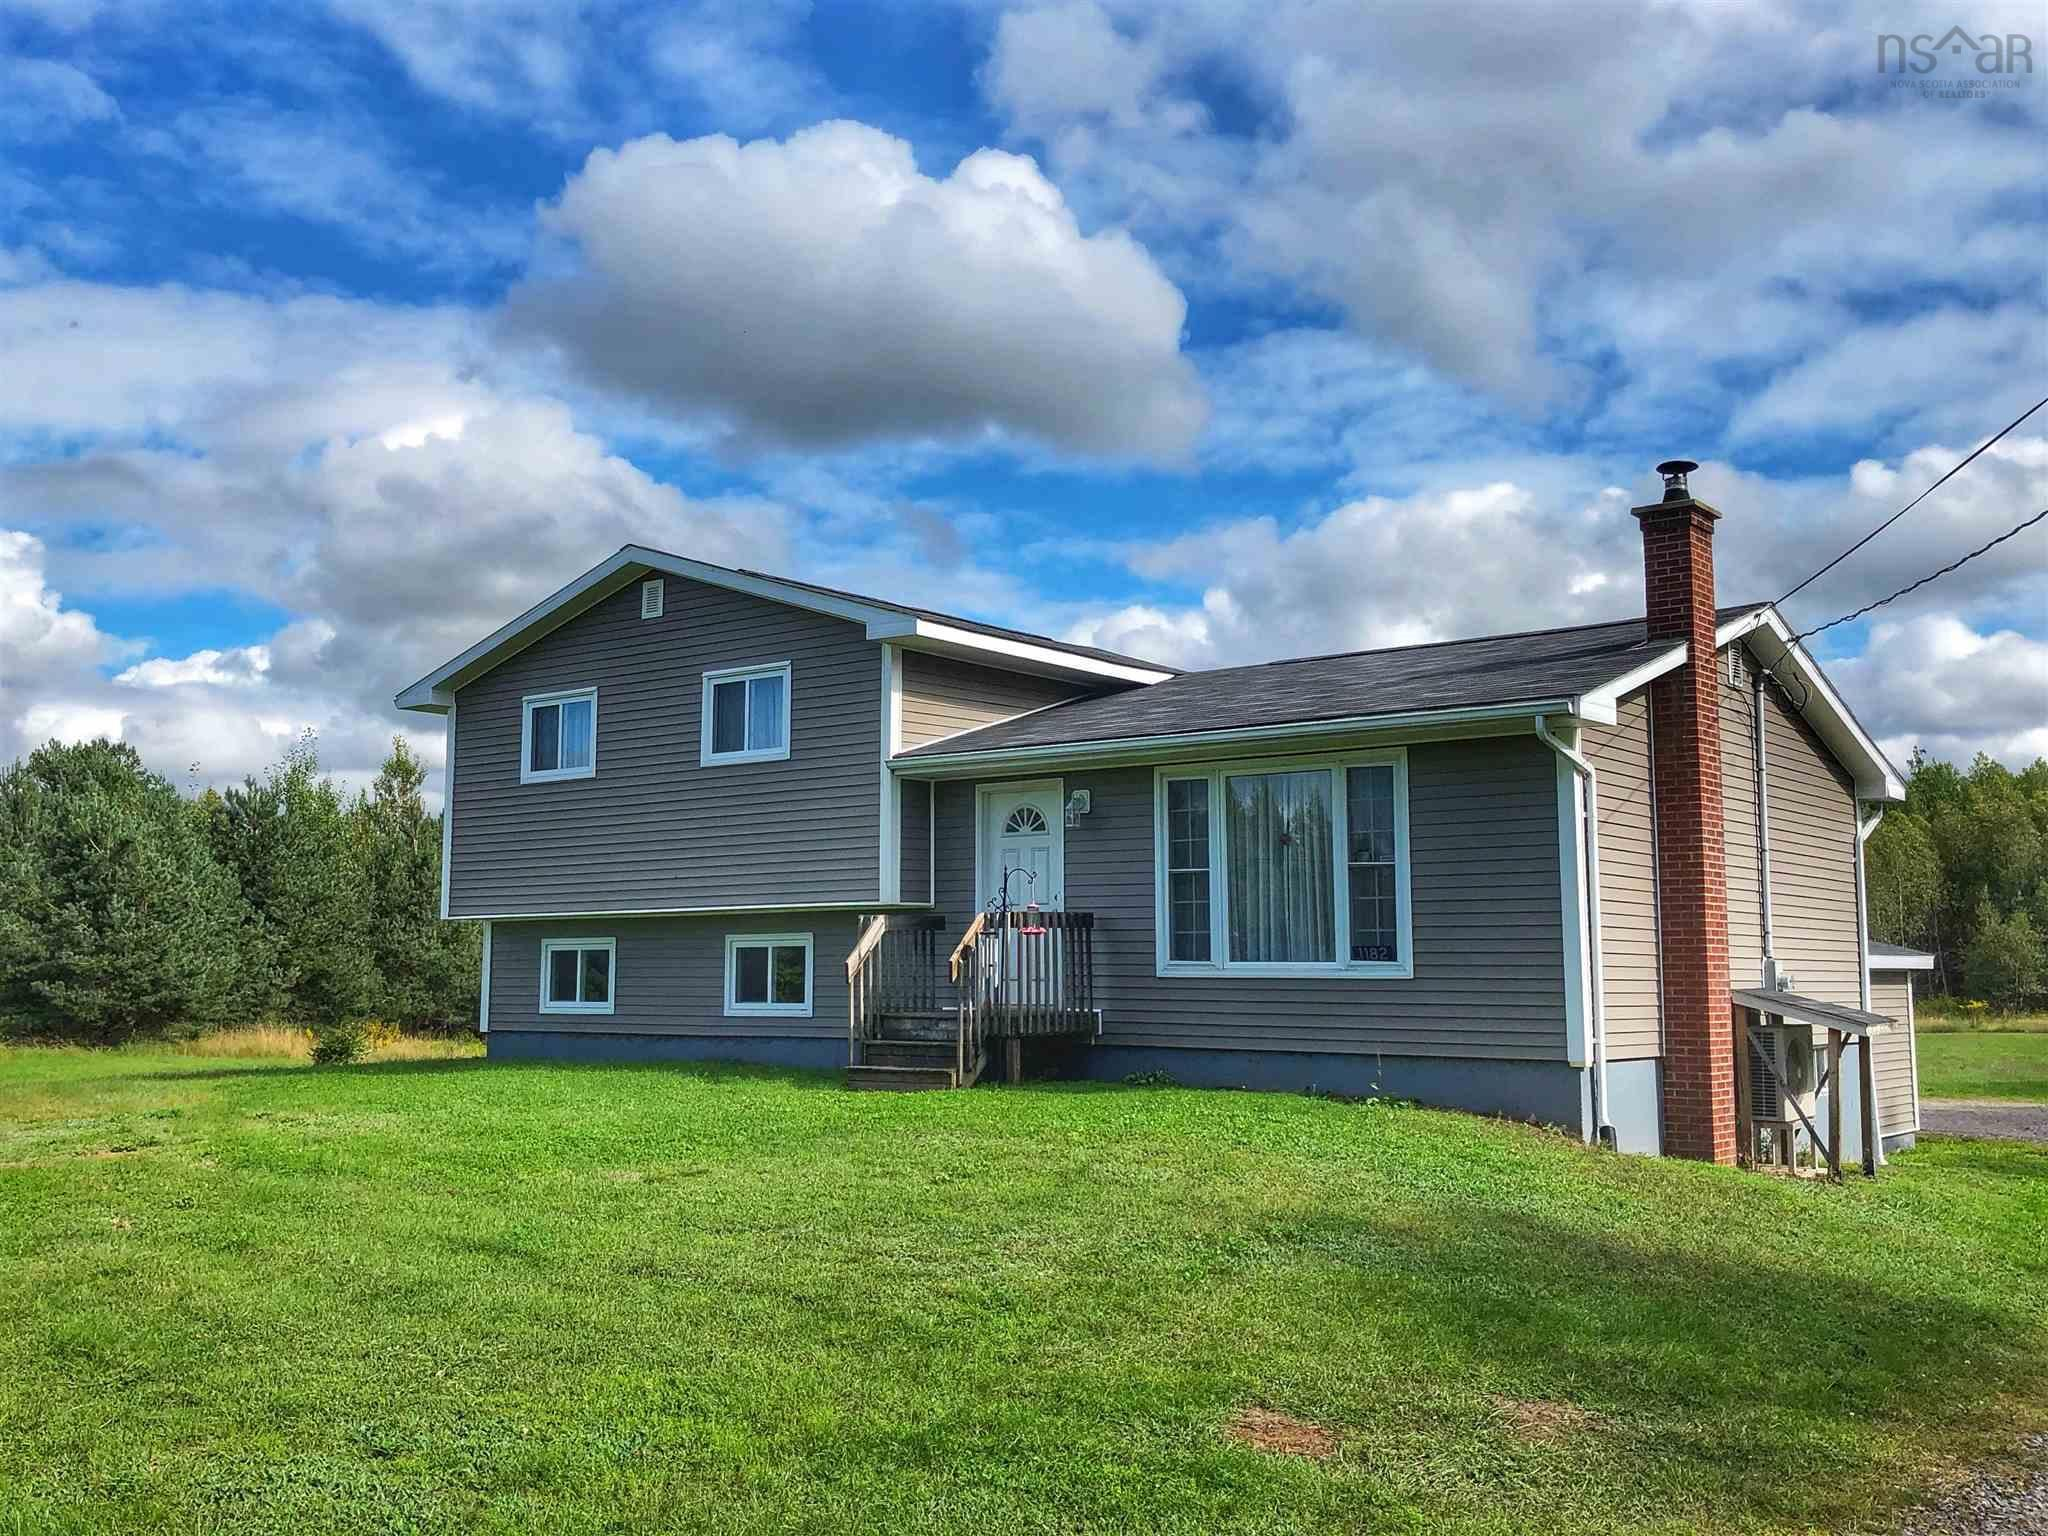 Main Photo: 1182 Hall Road in Millville: 404-Kings County Residential for sale (Annapolis Valley)  : MLS®# 202122271